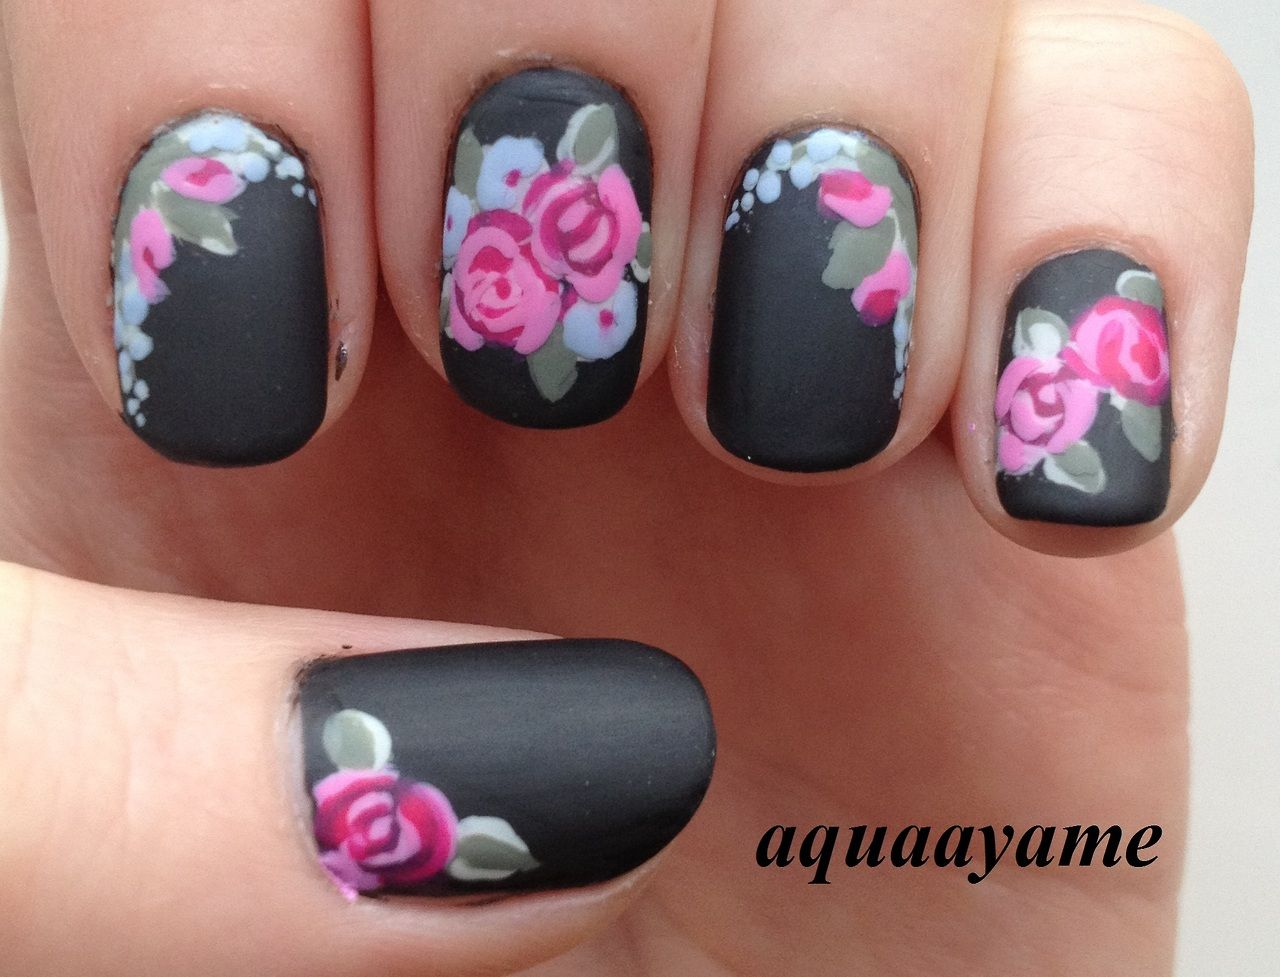 Floral un Black matte nail art Ium not really into nails but this